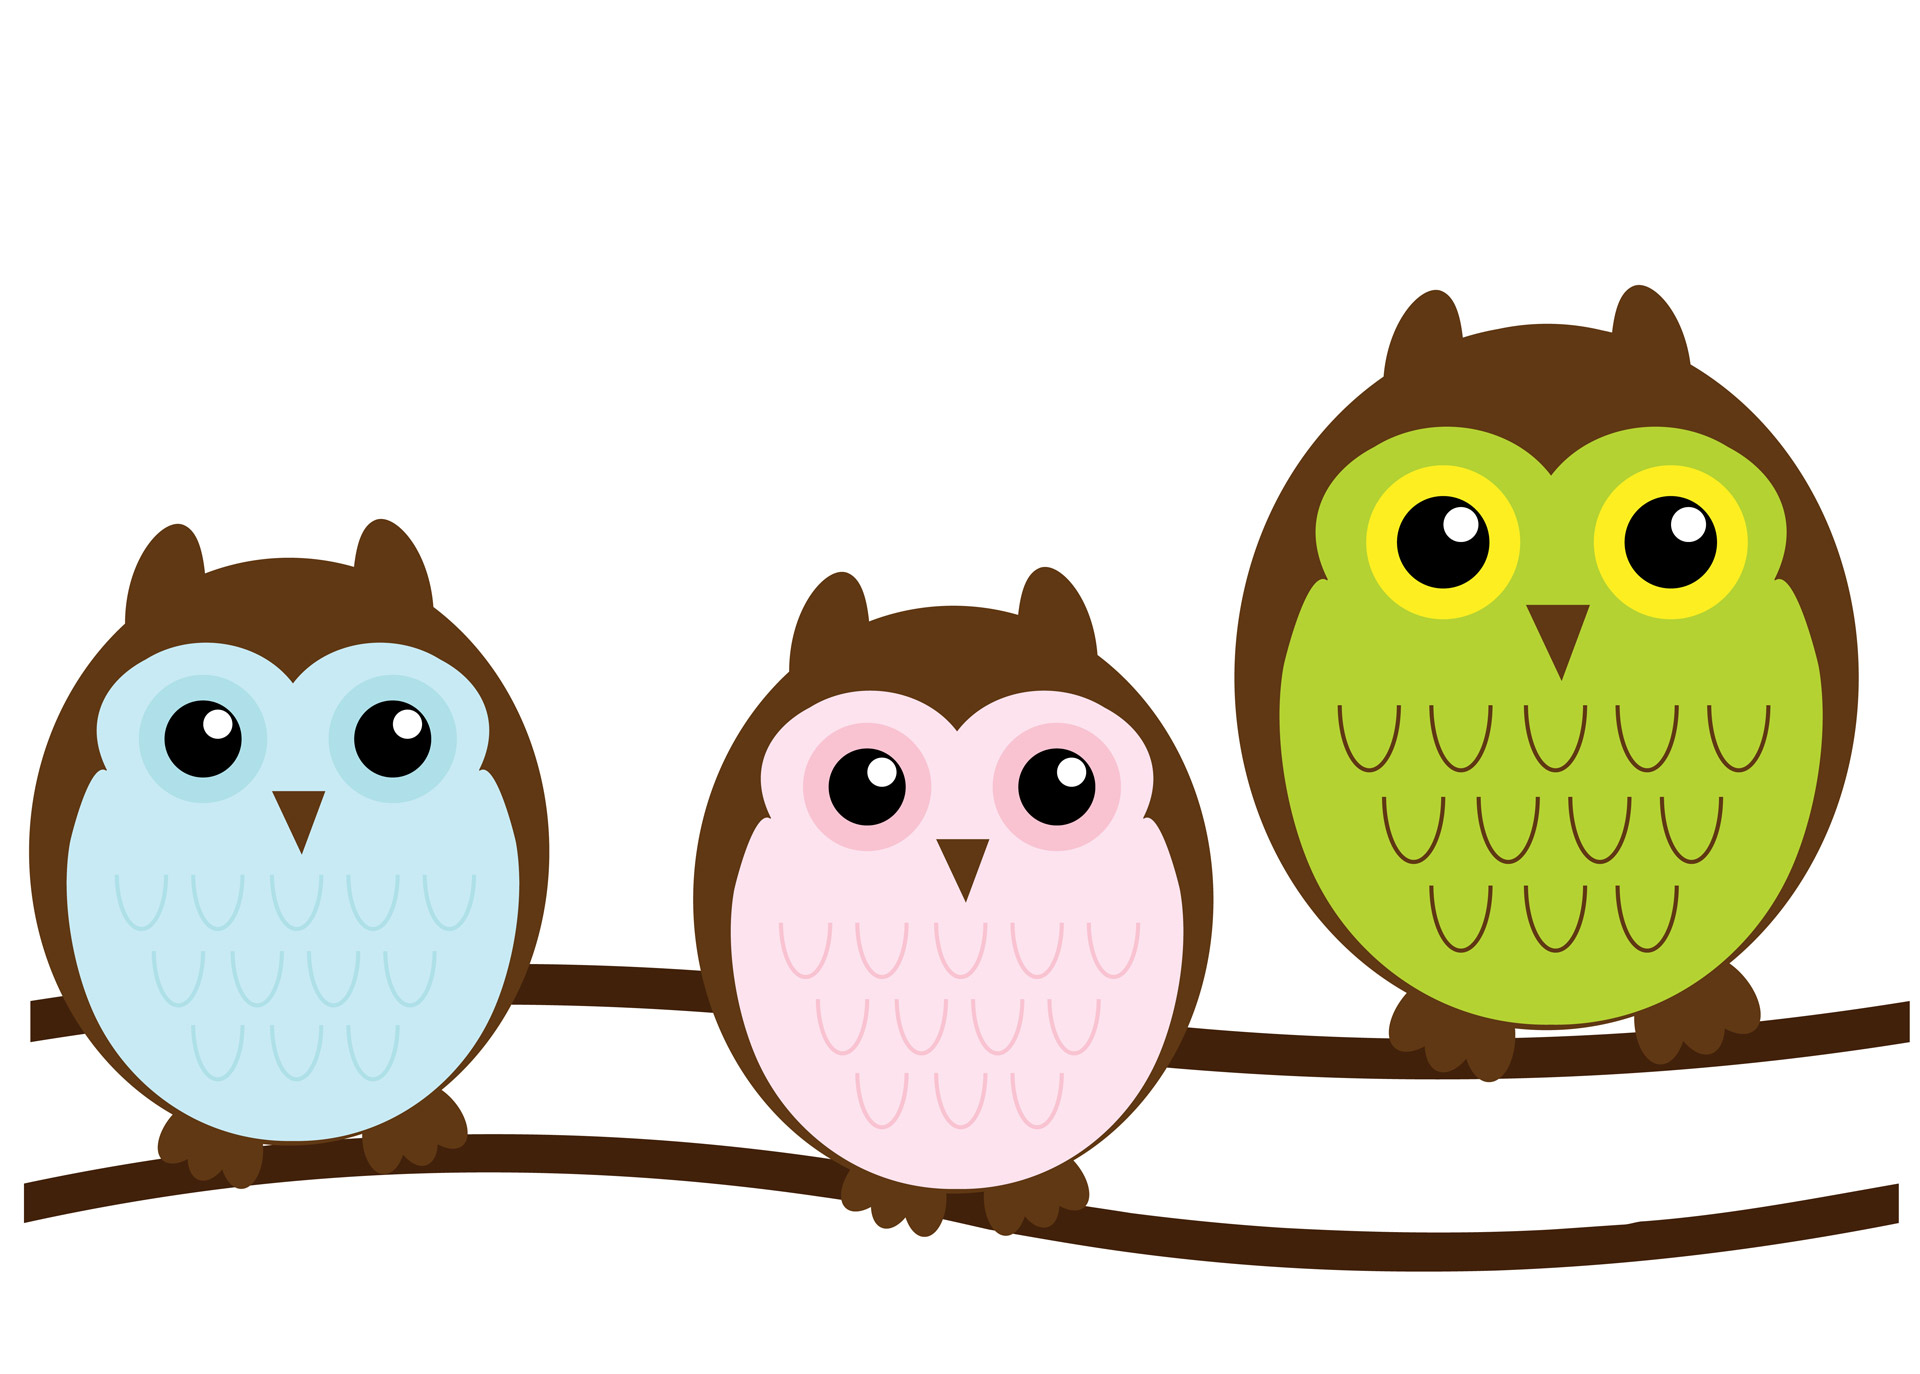 1920x1374 Cute Clip Art And Graphics Free Clipart Images 2